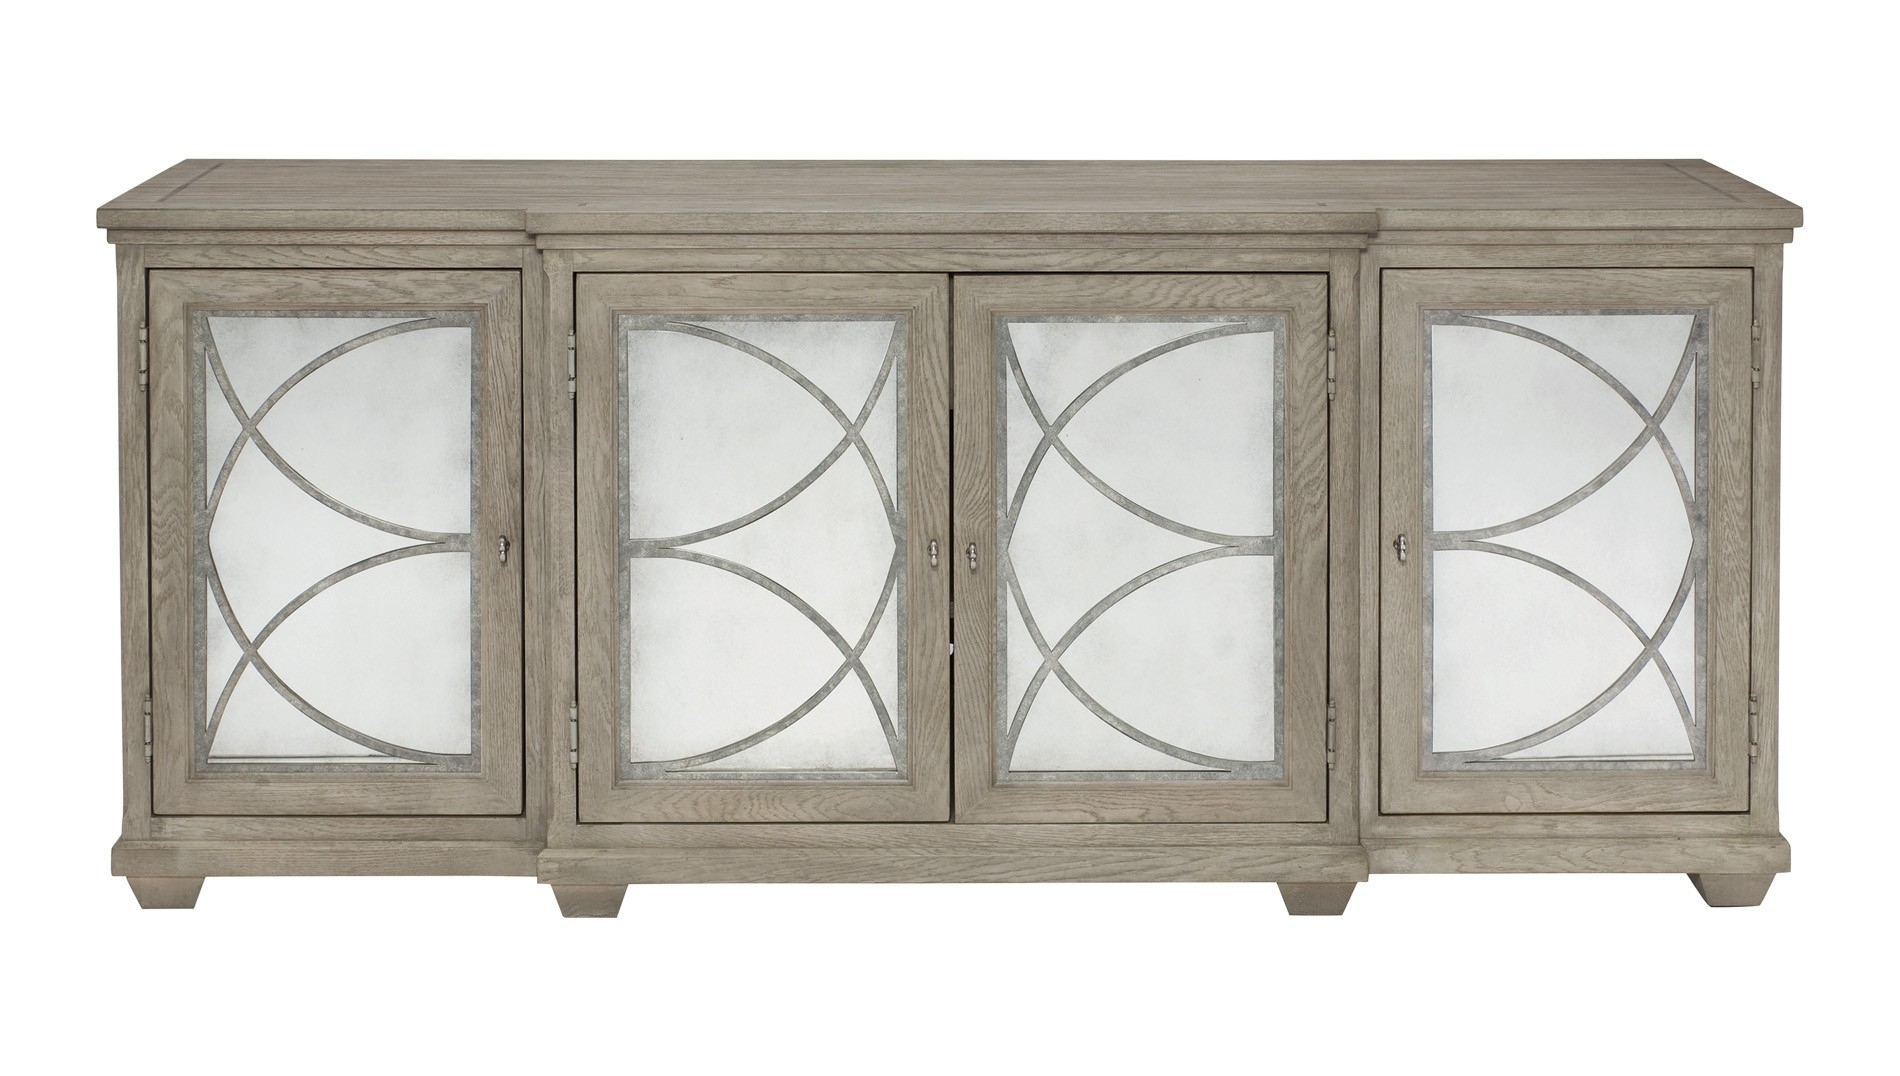 Bernhardt, Marquesa Sideboard – Antique Mirror, Buy Online At Luxdeco Inside Most Current Aged Mirrored 4 Door Sideboards (#4 of 20)